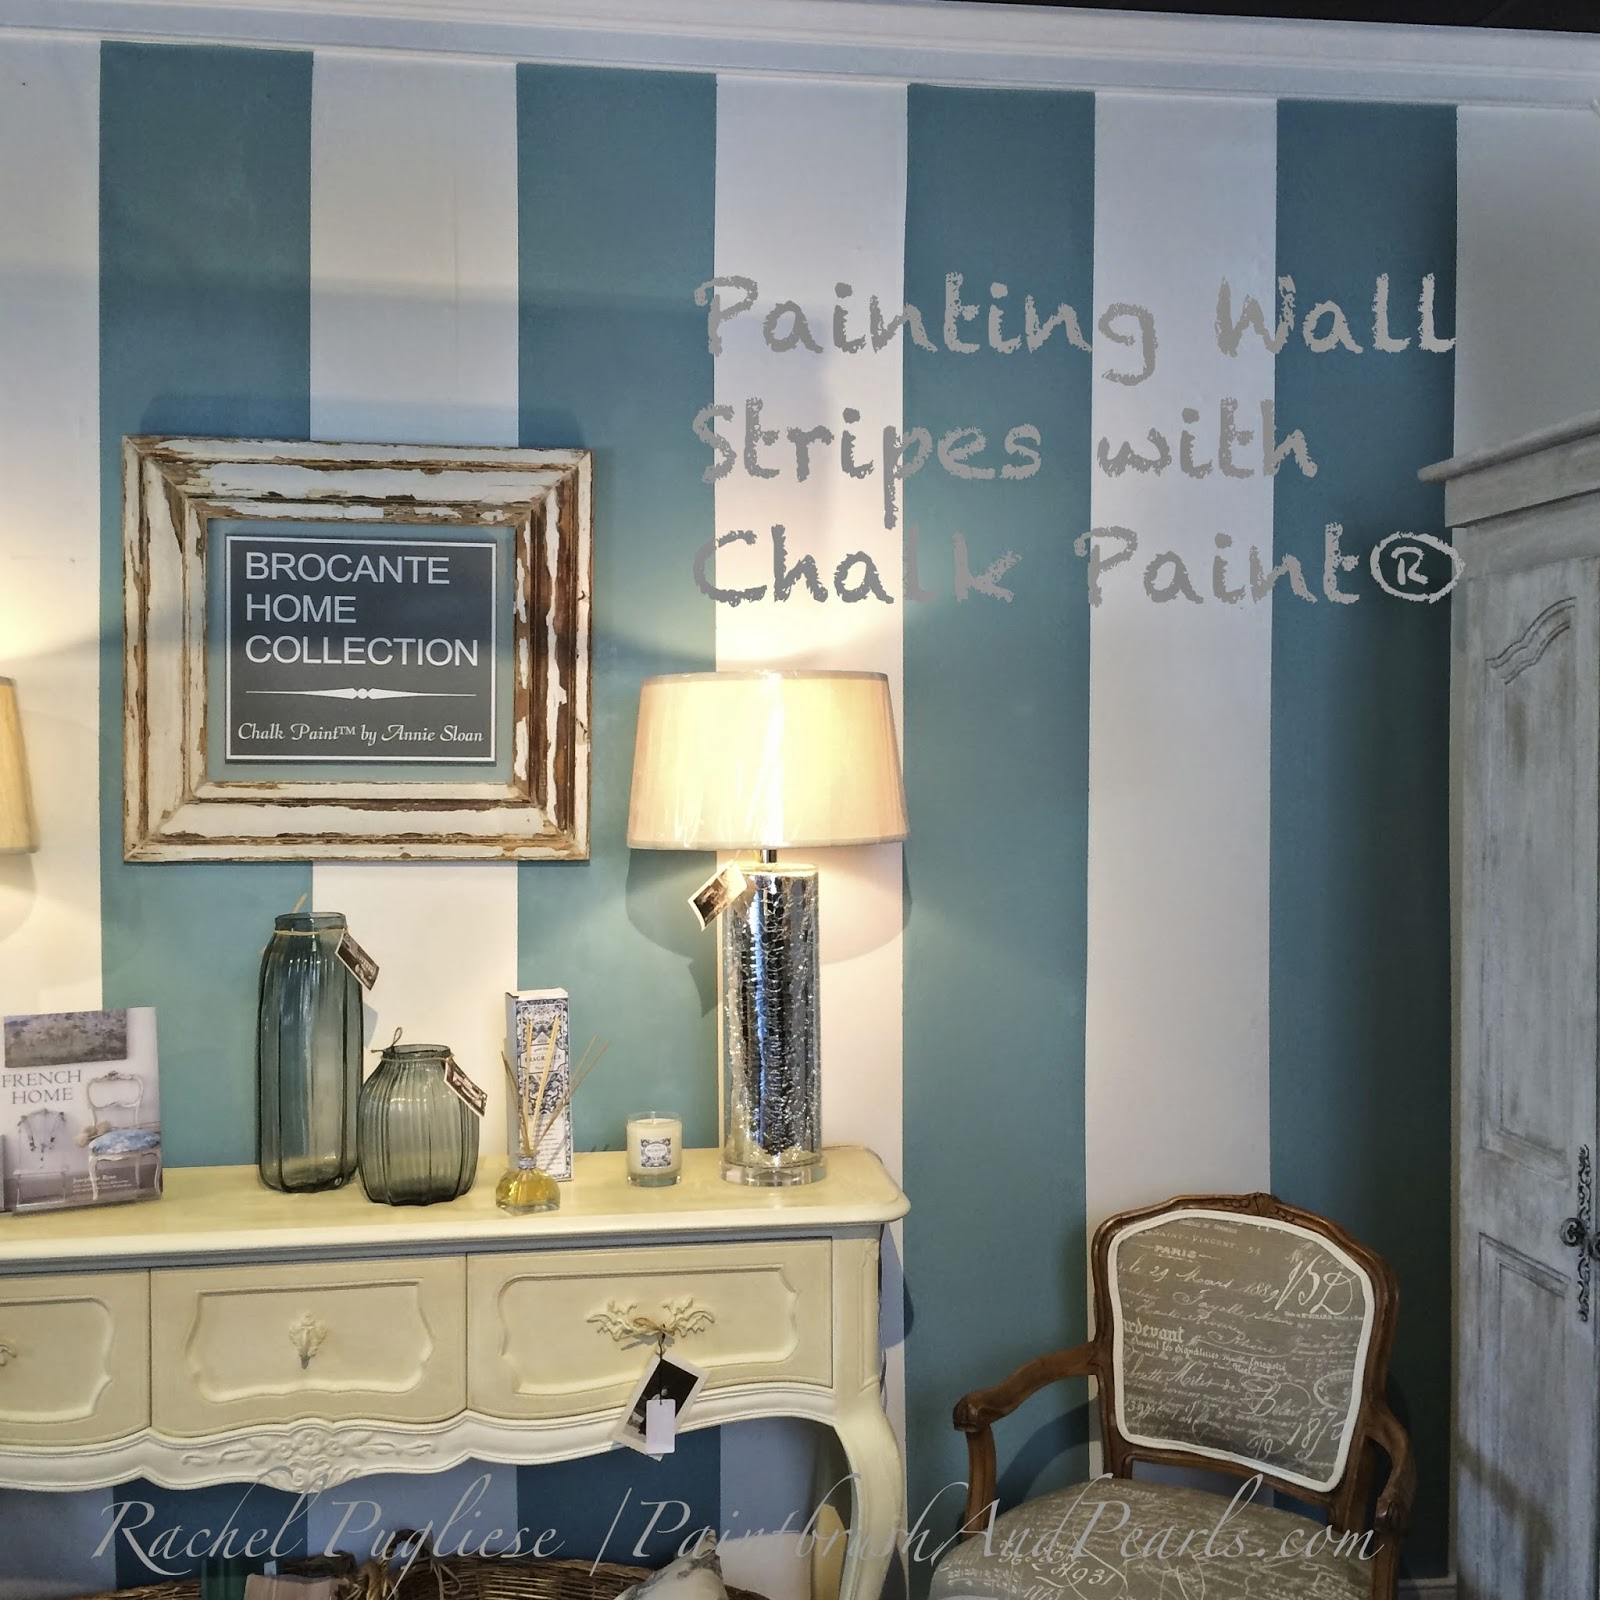 Brocante home collection 39 s paintbrush and pearls painting for How to paint a wall with chalk paint